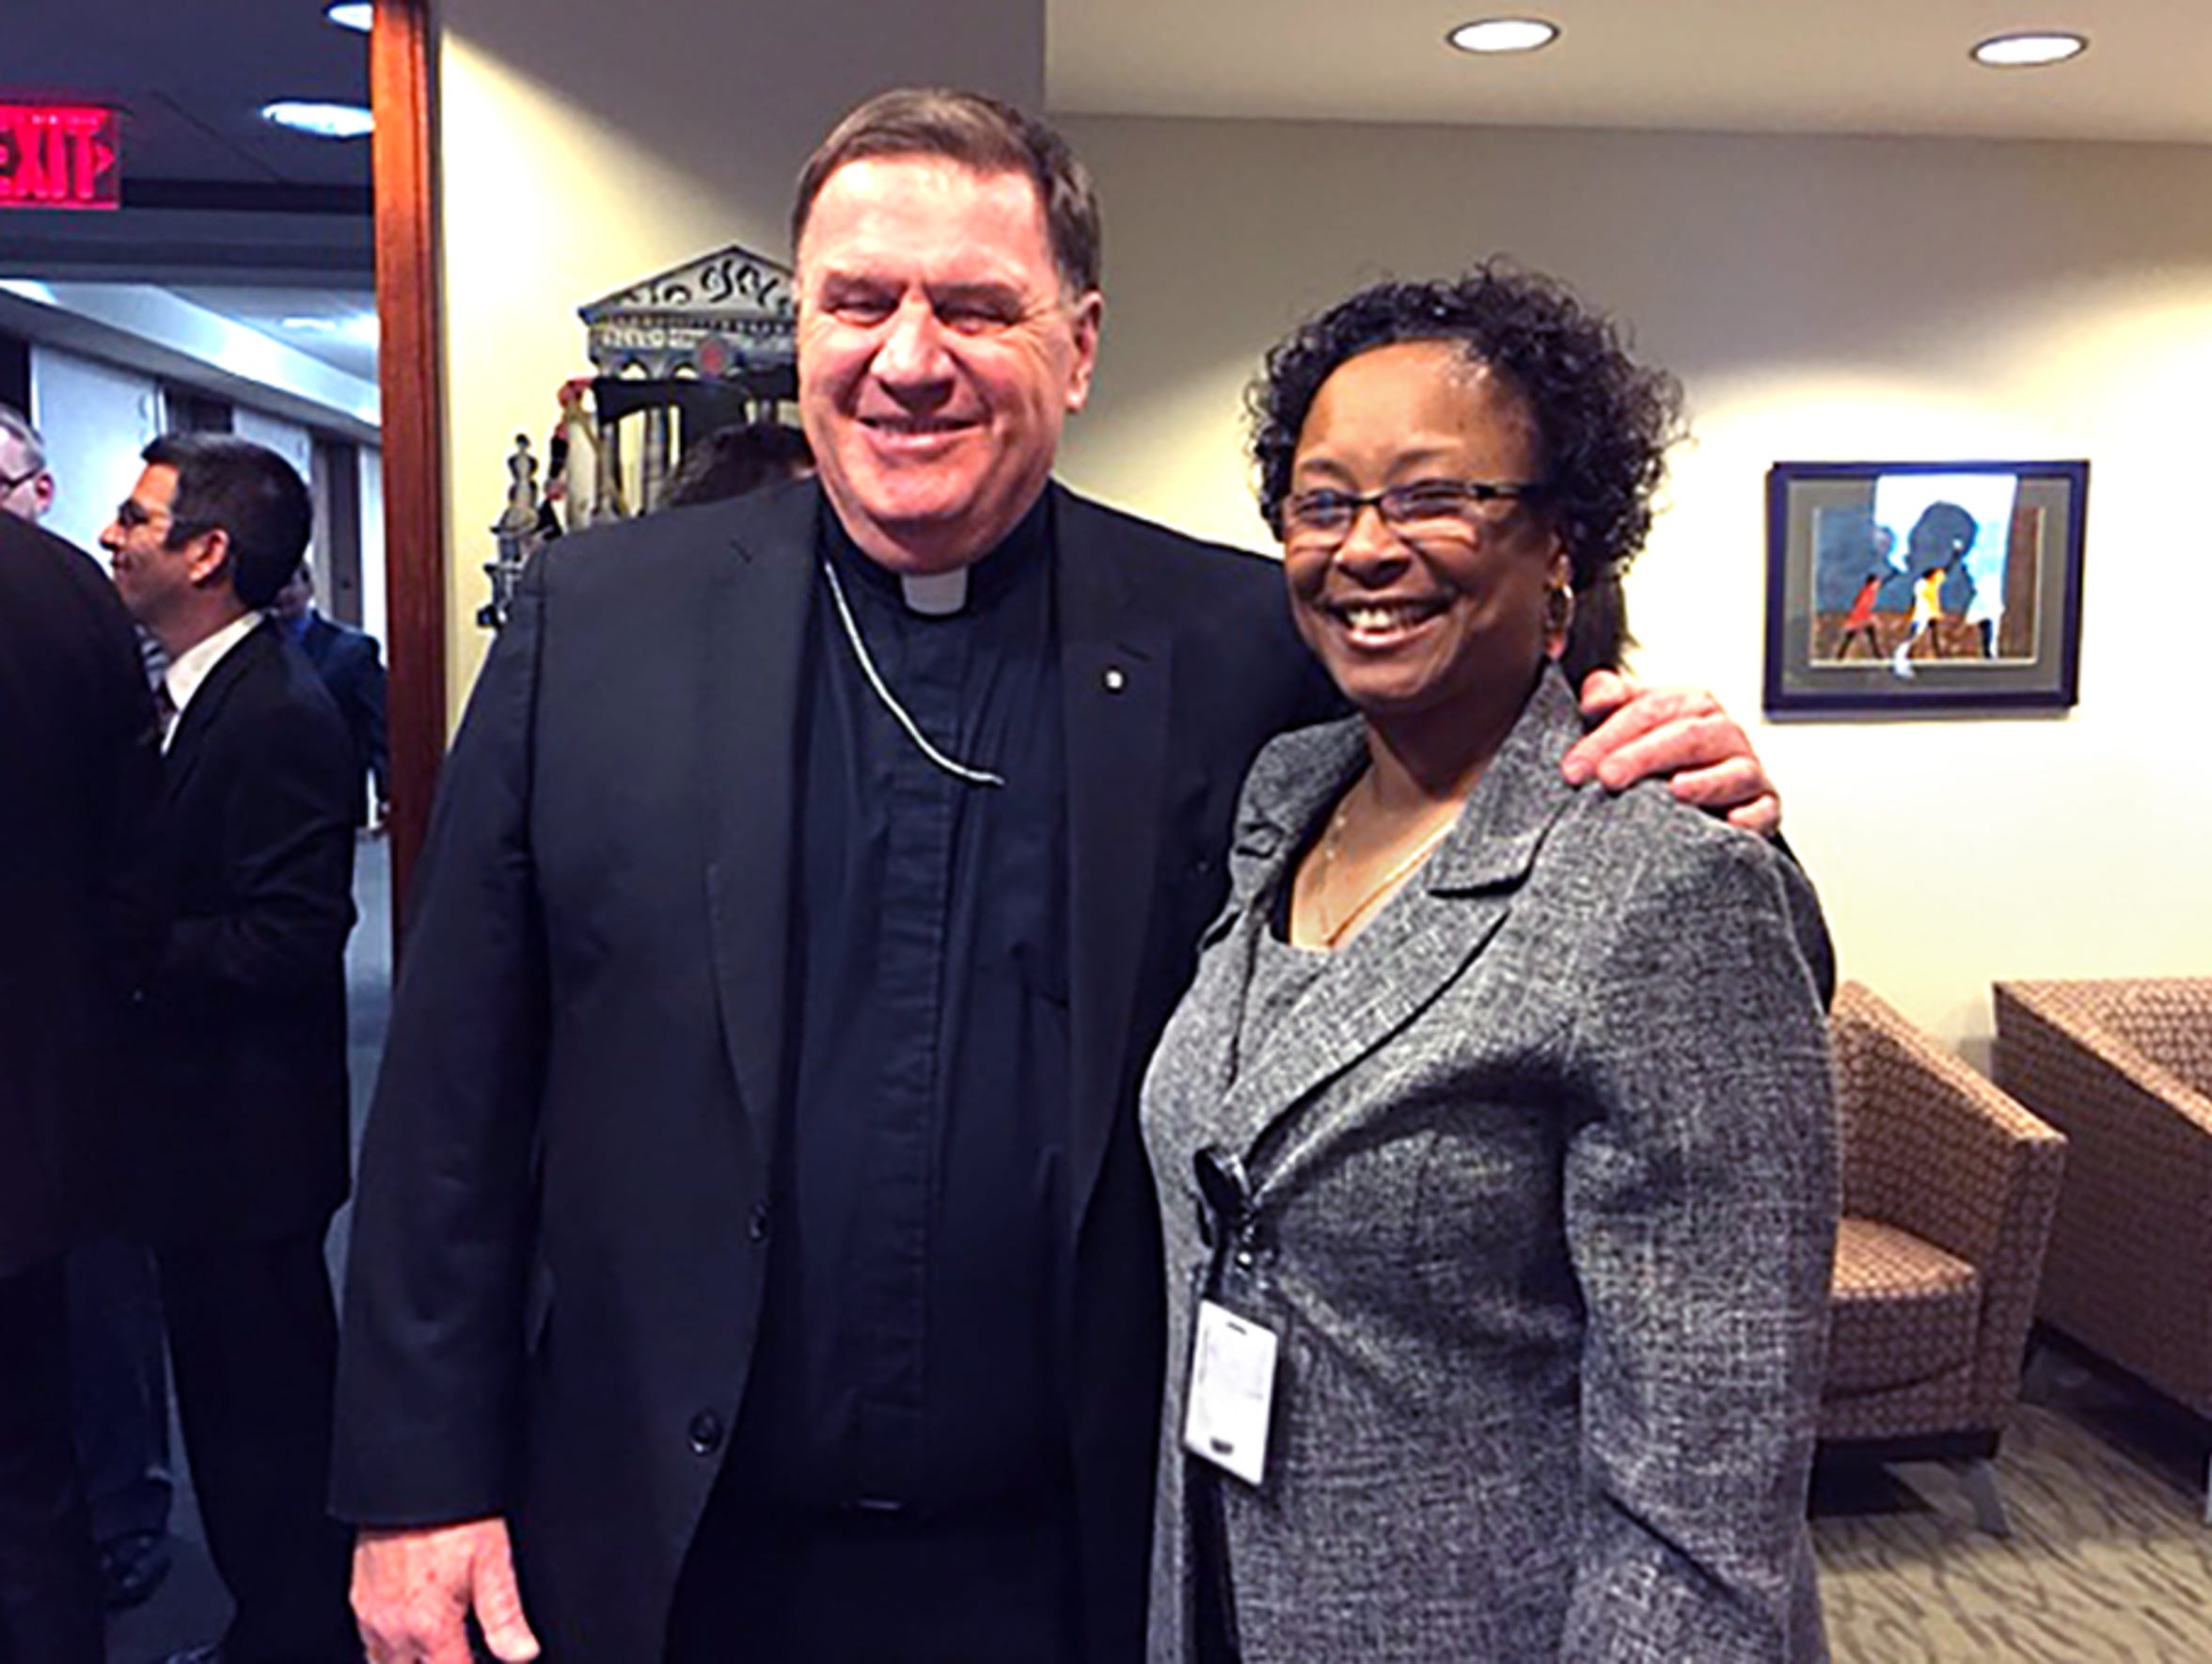 Paula Cooper (right) is shown March 5, 2015 with Archbishop